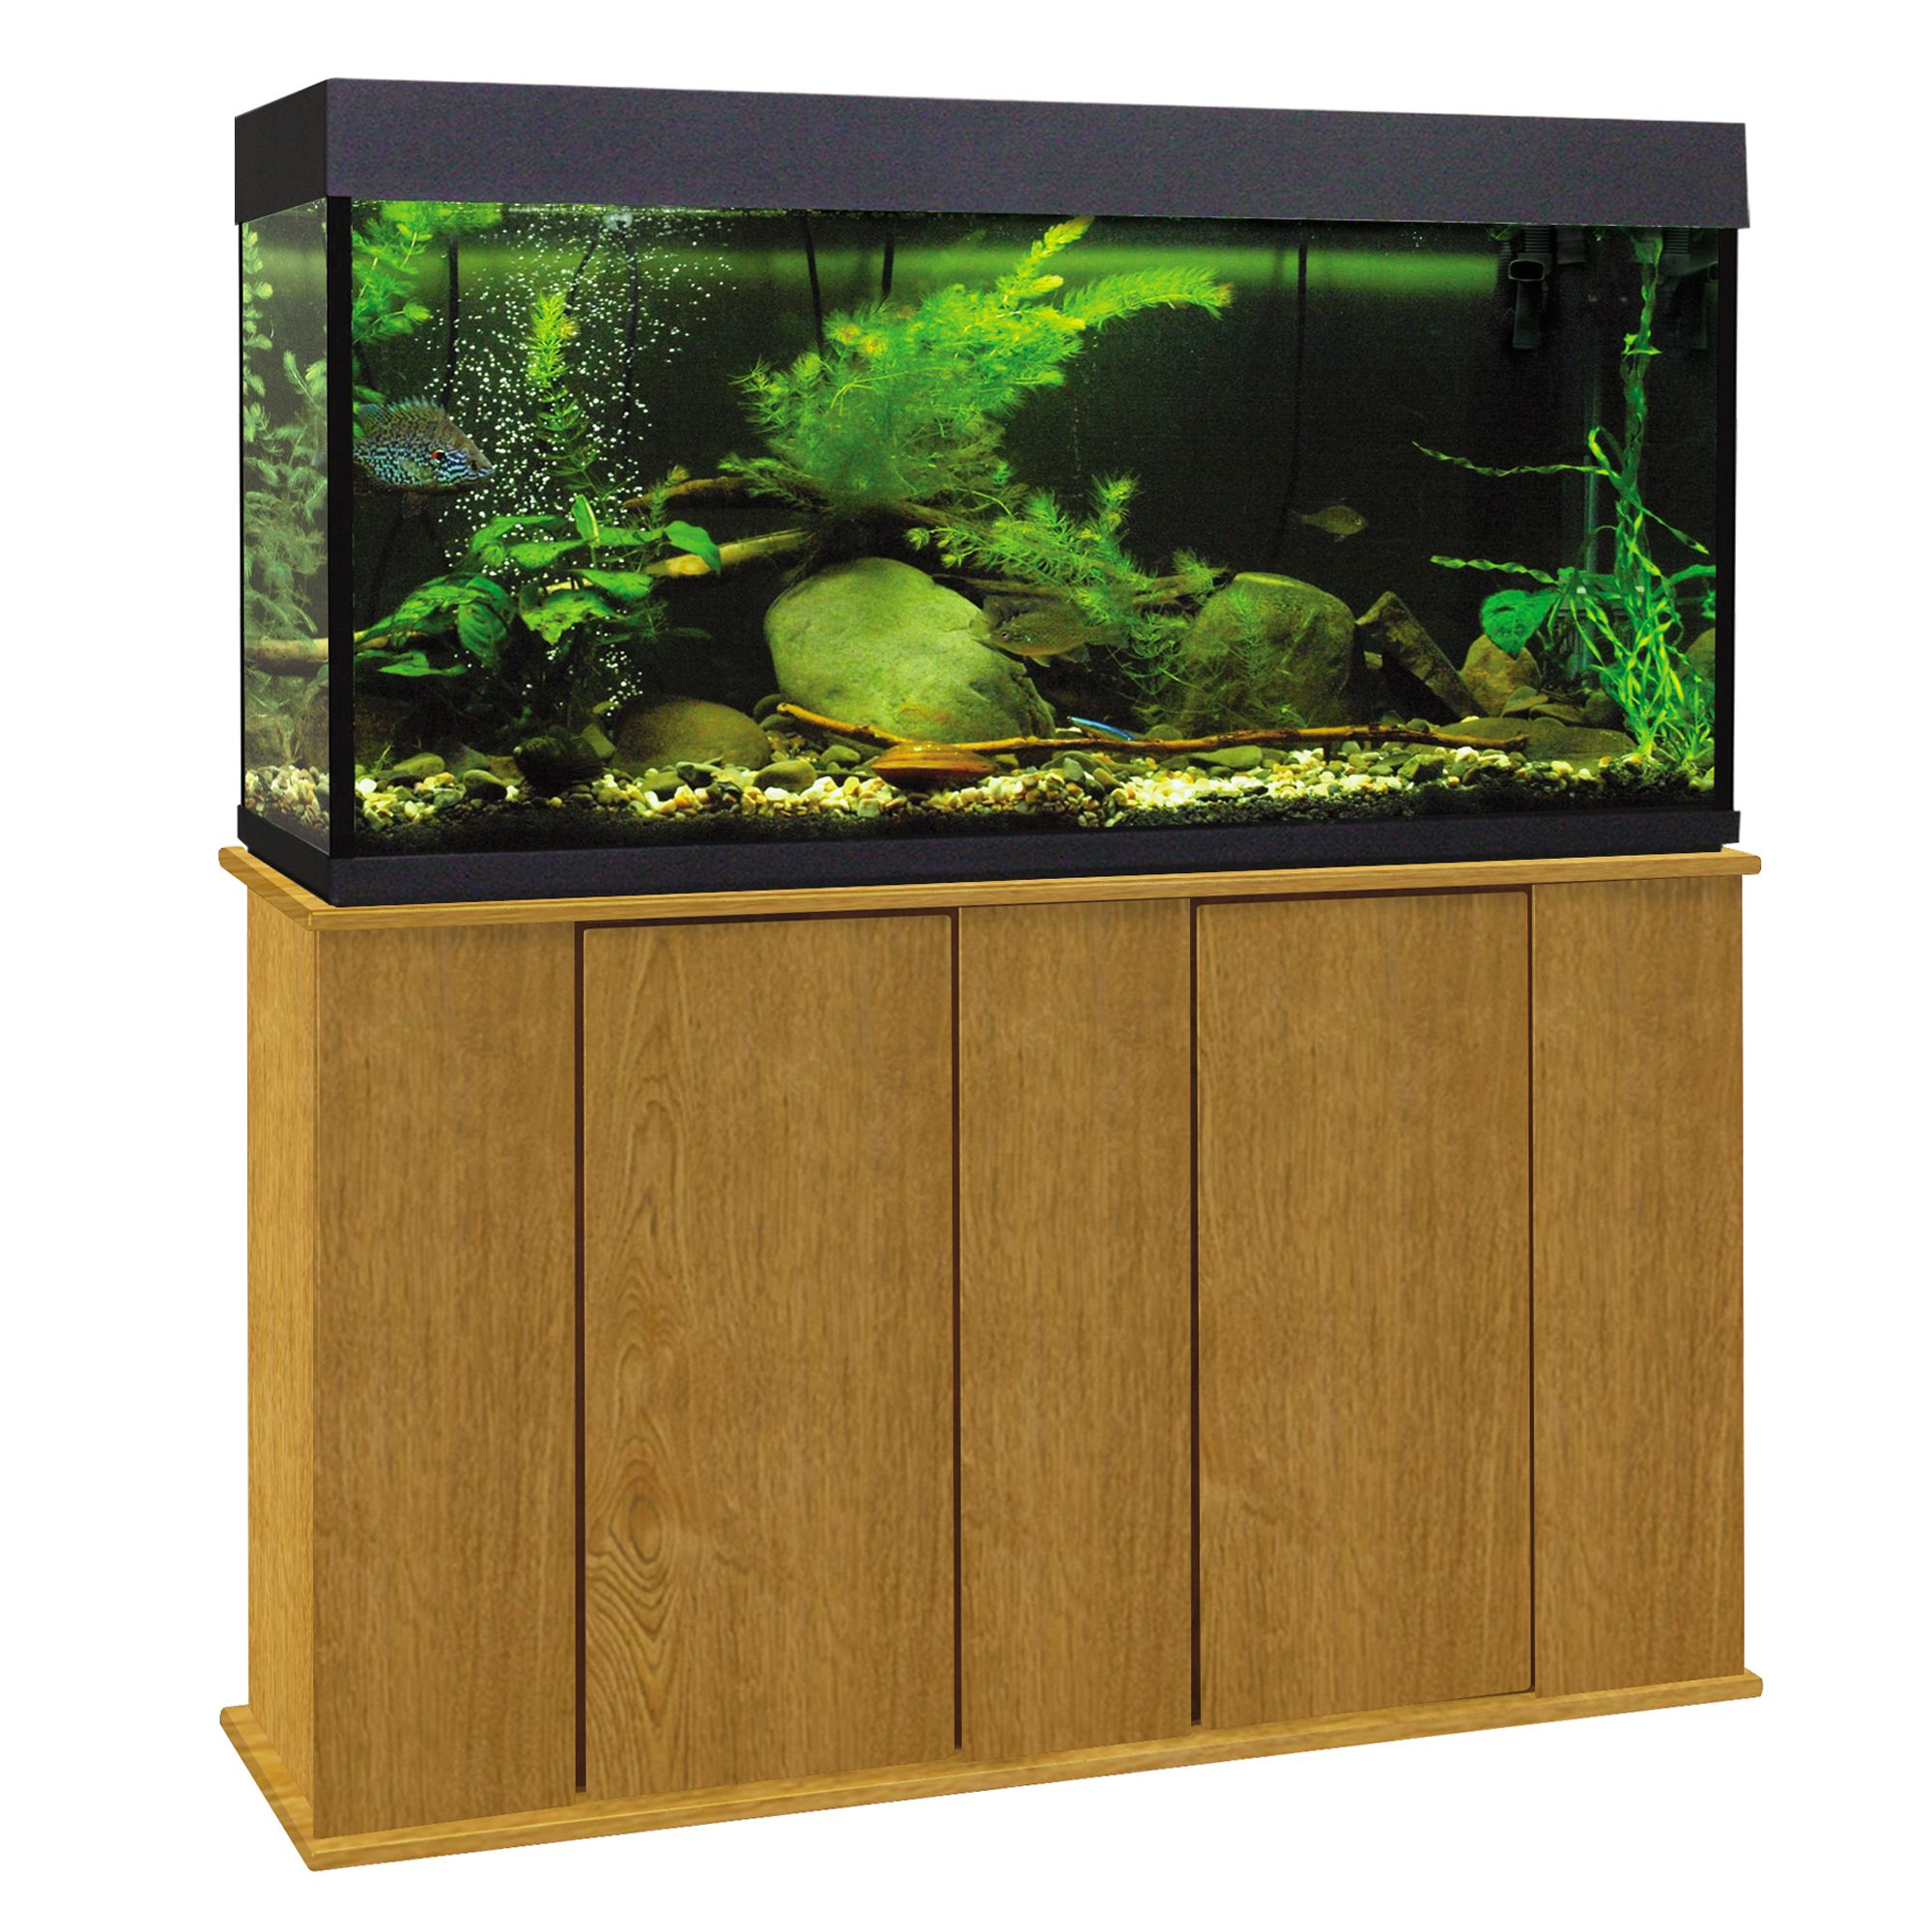 Marco 30 45 gallon upright aquarium stand brown for 38 gallon fish tank